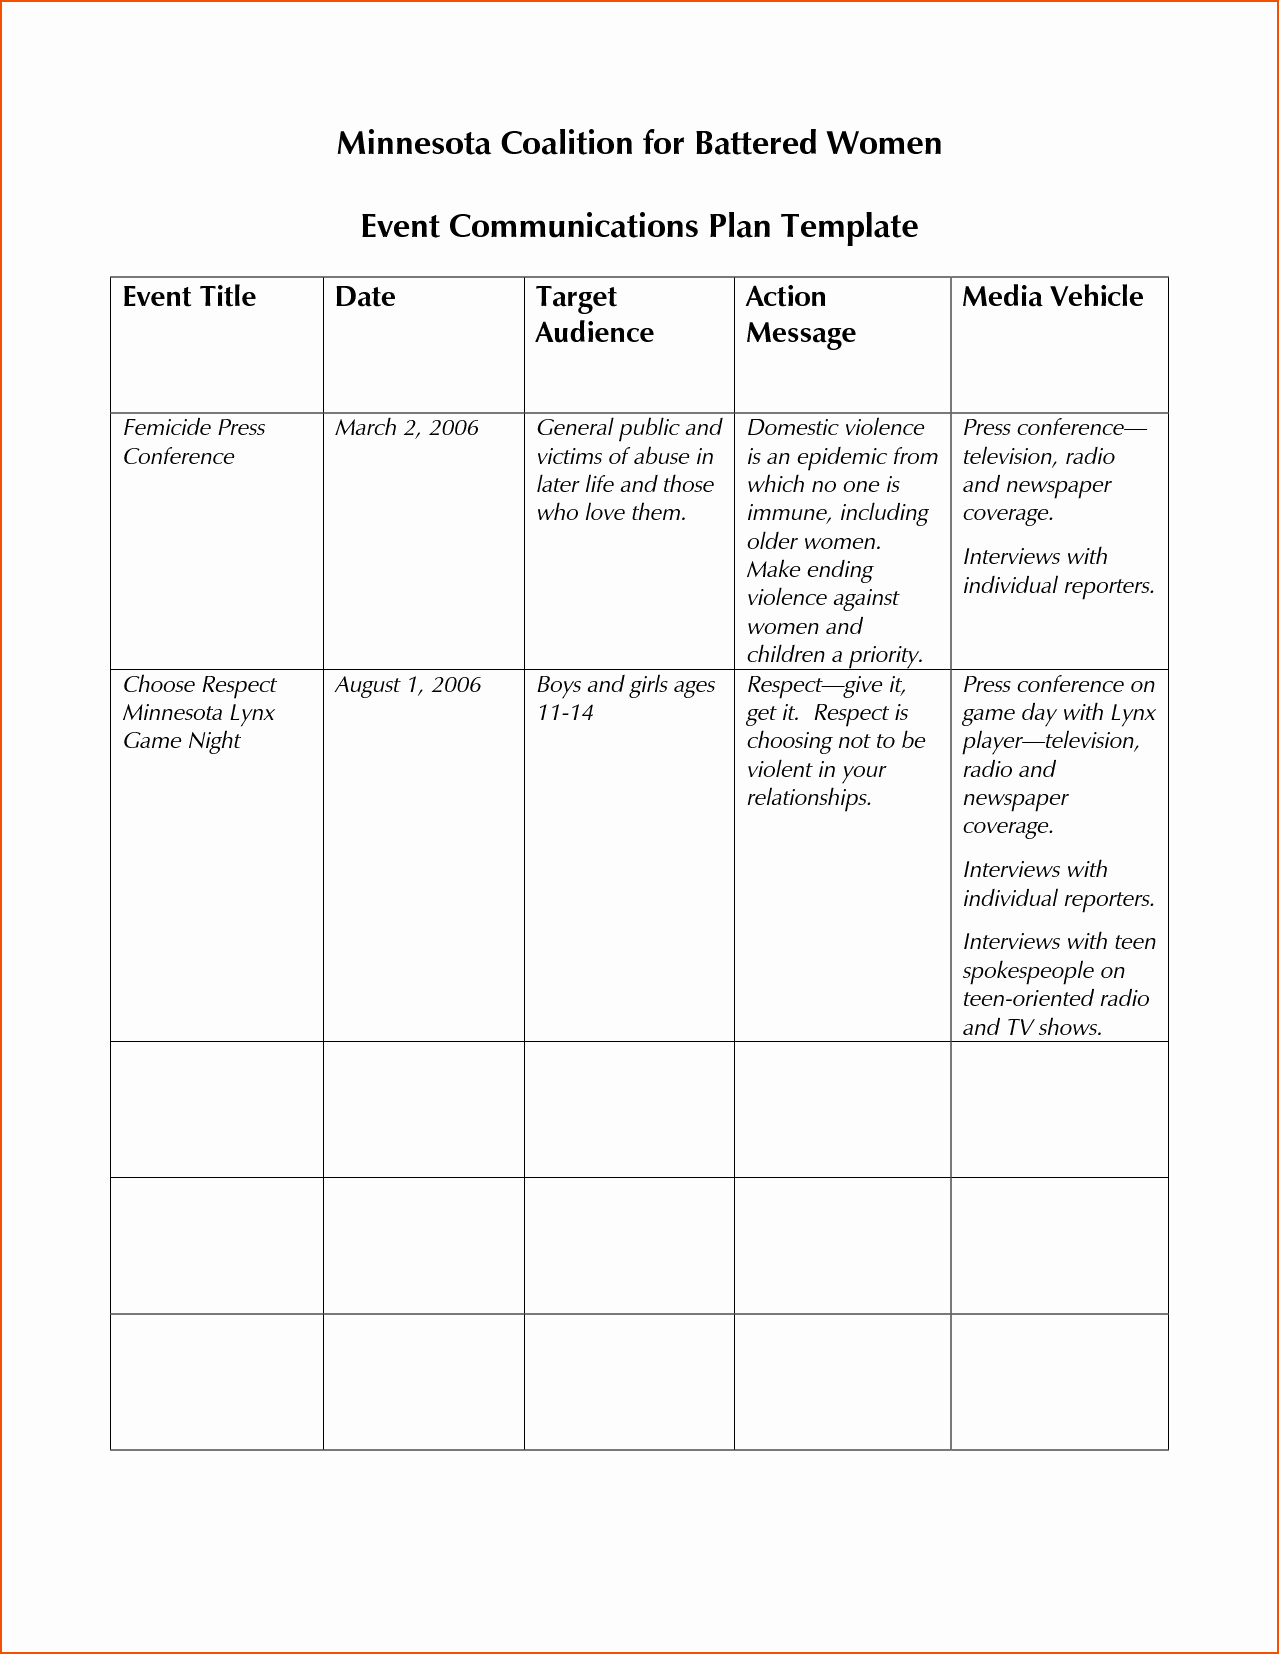 Event Planning Document Template Fresh event Planning Document Template Portablegasgrillweber